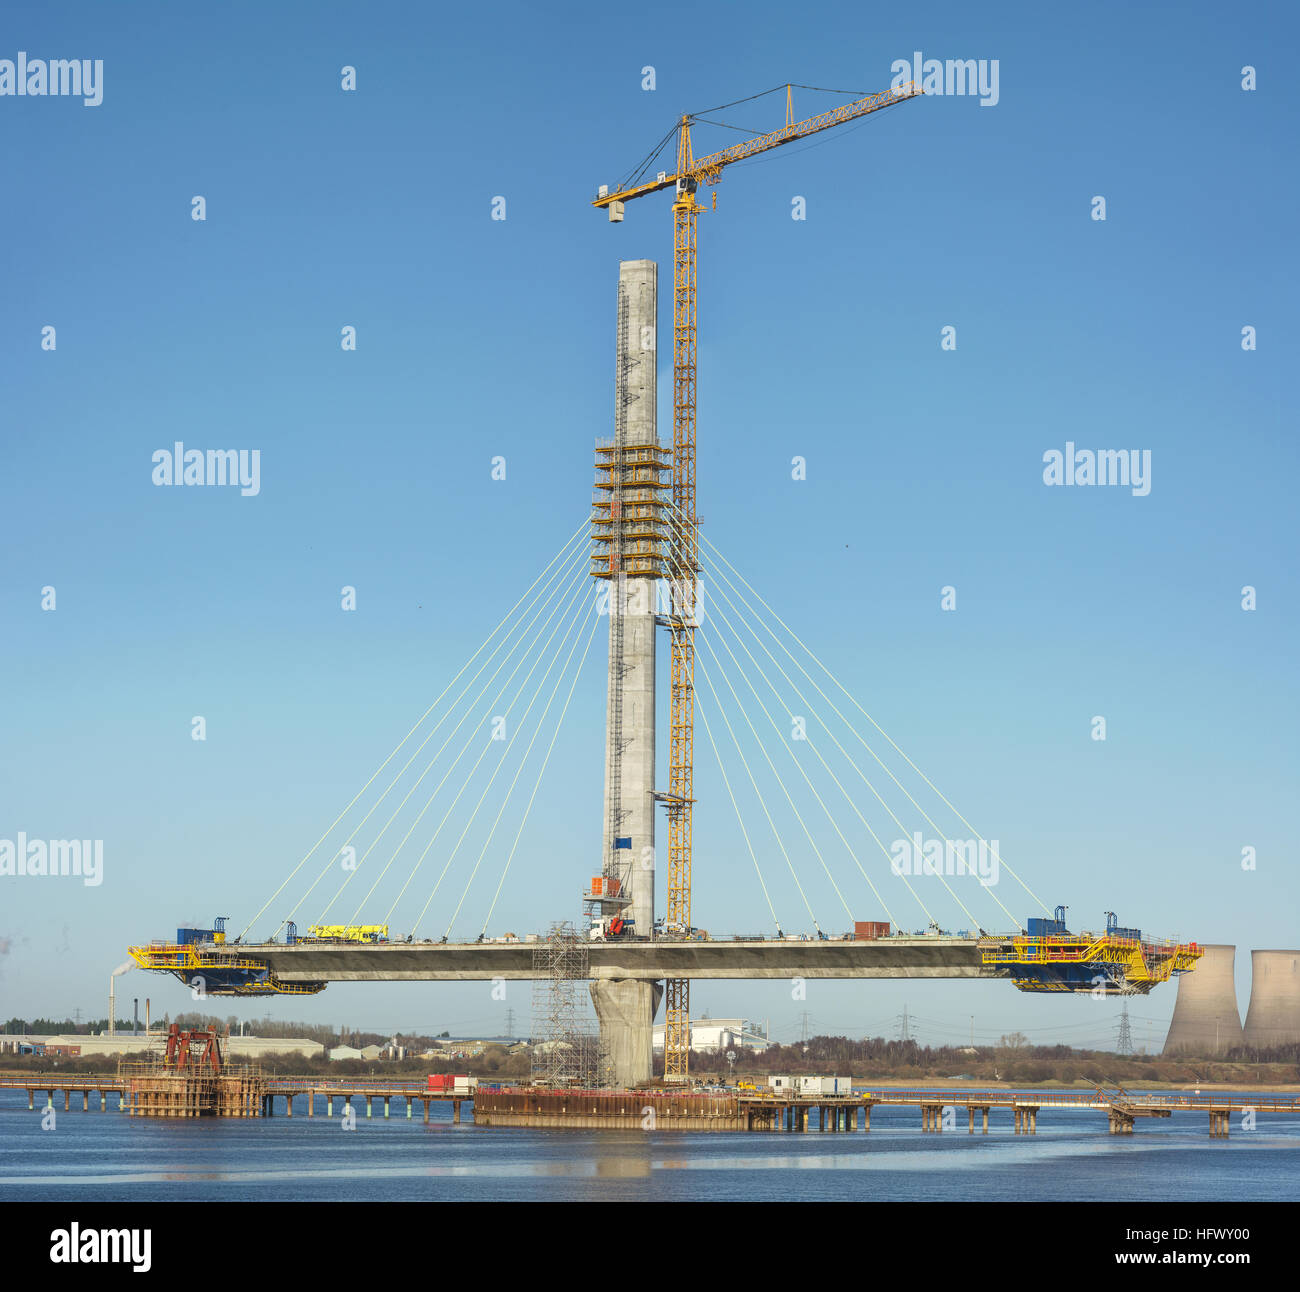 Mersey Gateway project - the new Runcorn-Widnes bridge being constructed across the River Mersey by West Bank, Widnes. - Stock Image